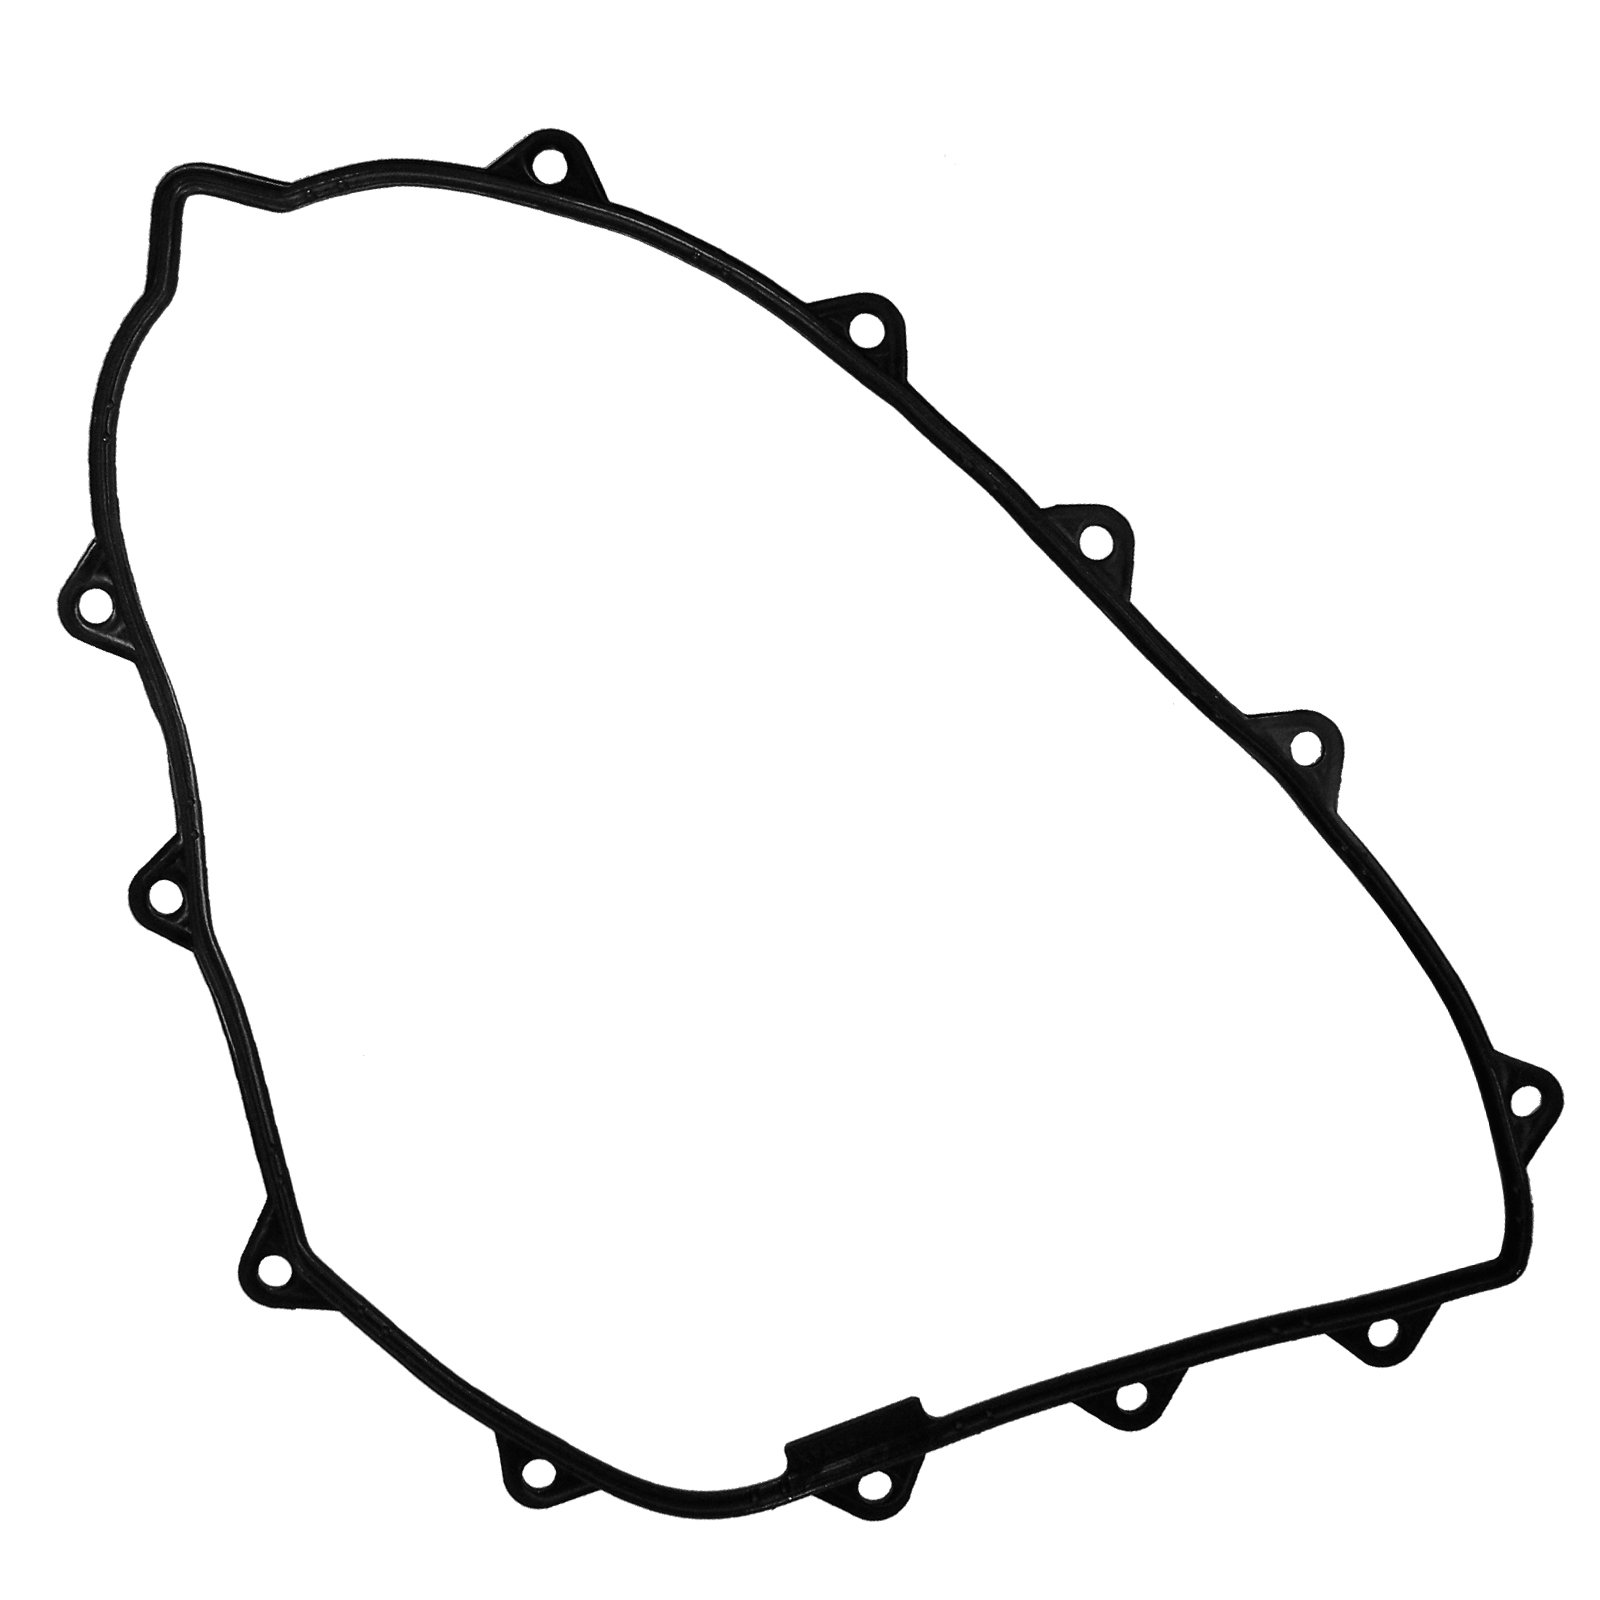 CALTRIC TRANSMISSION CLUTCH COVER GASKET FITS CAN-AM COMMANDER 1000 2011-2015